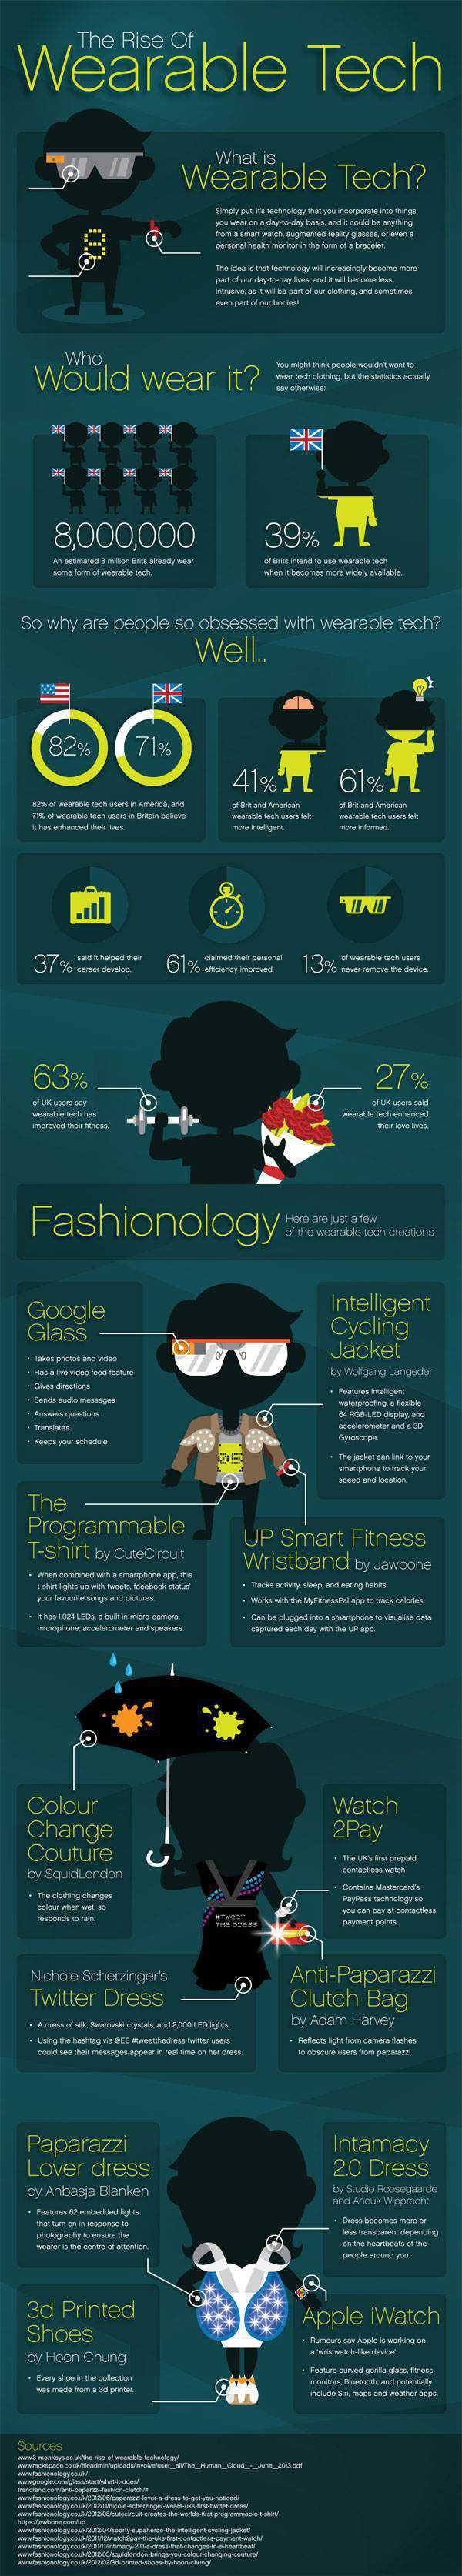 wearable-tech-infographic